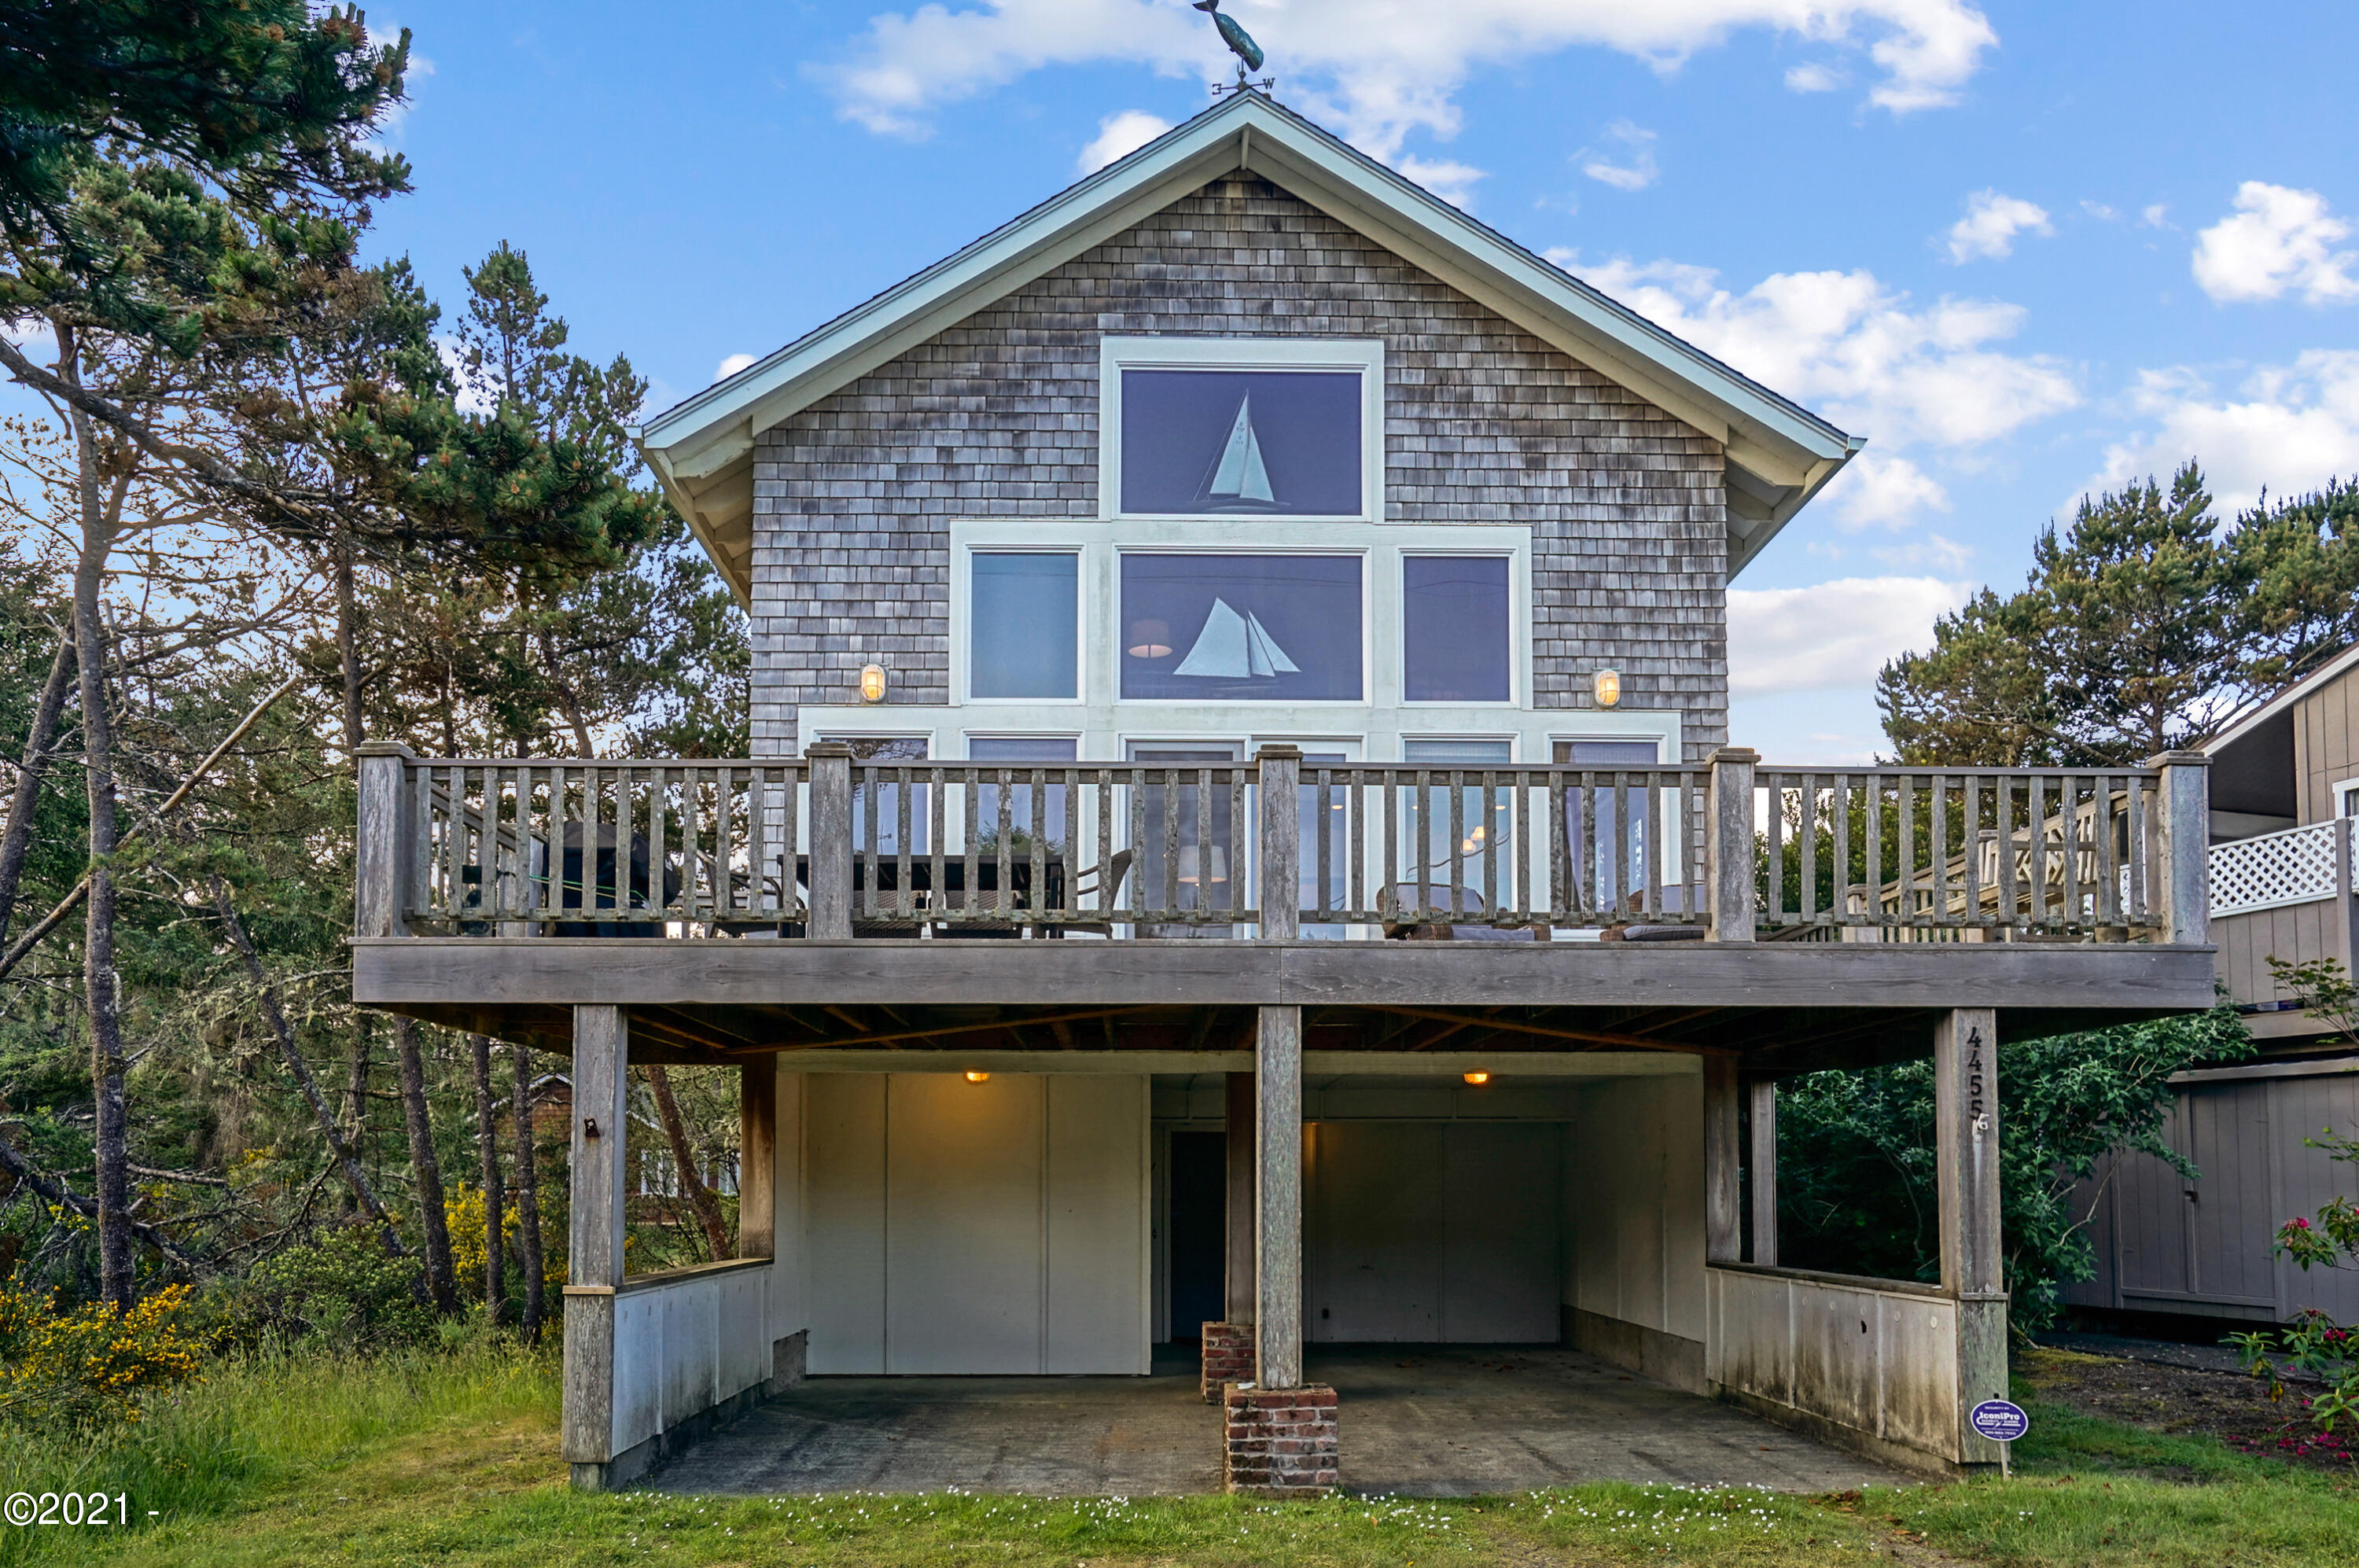 4455 Corvallis Ave, Neskowin, OR 97149